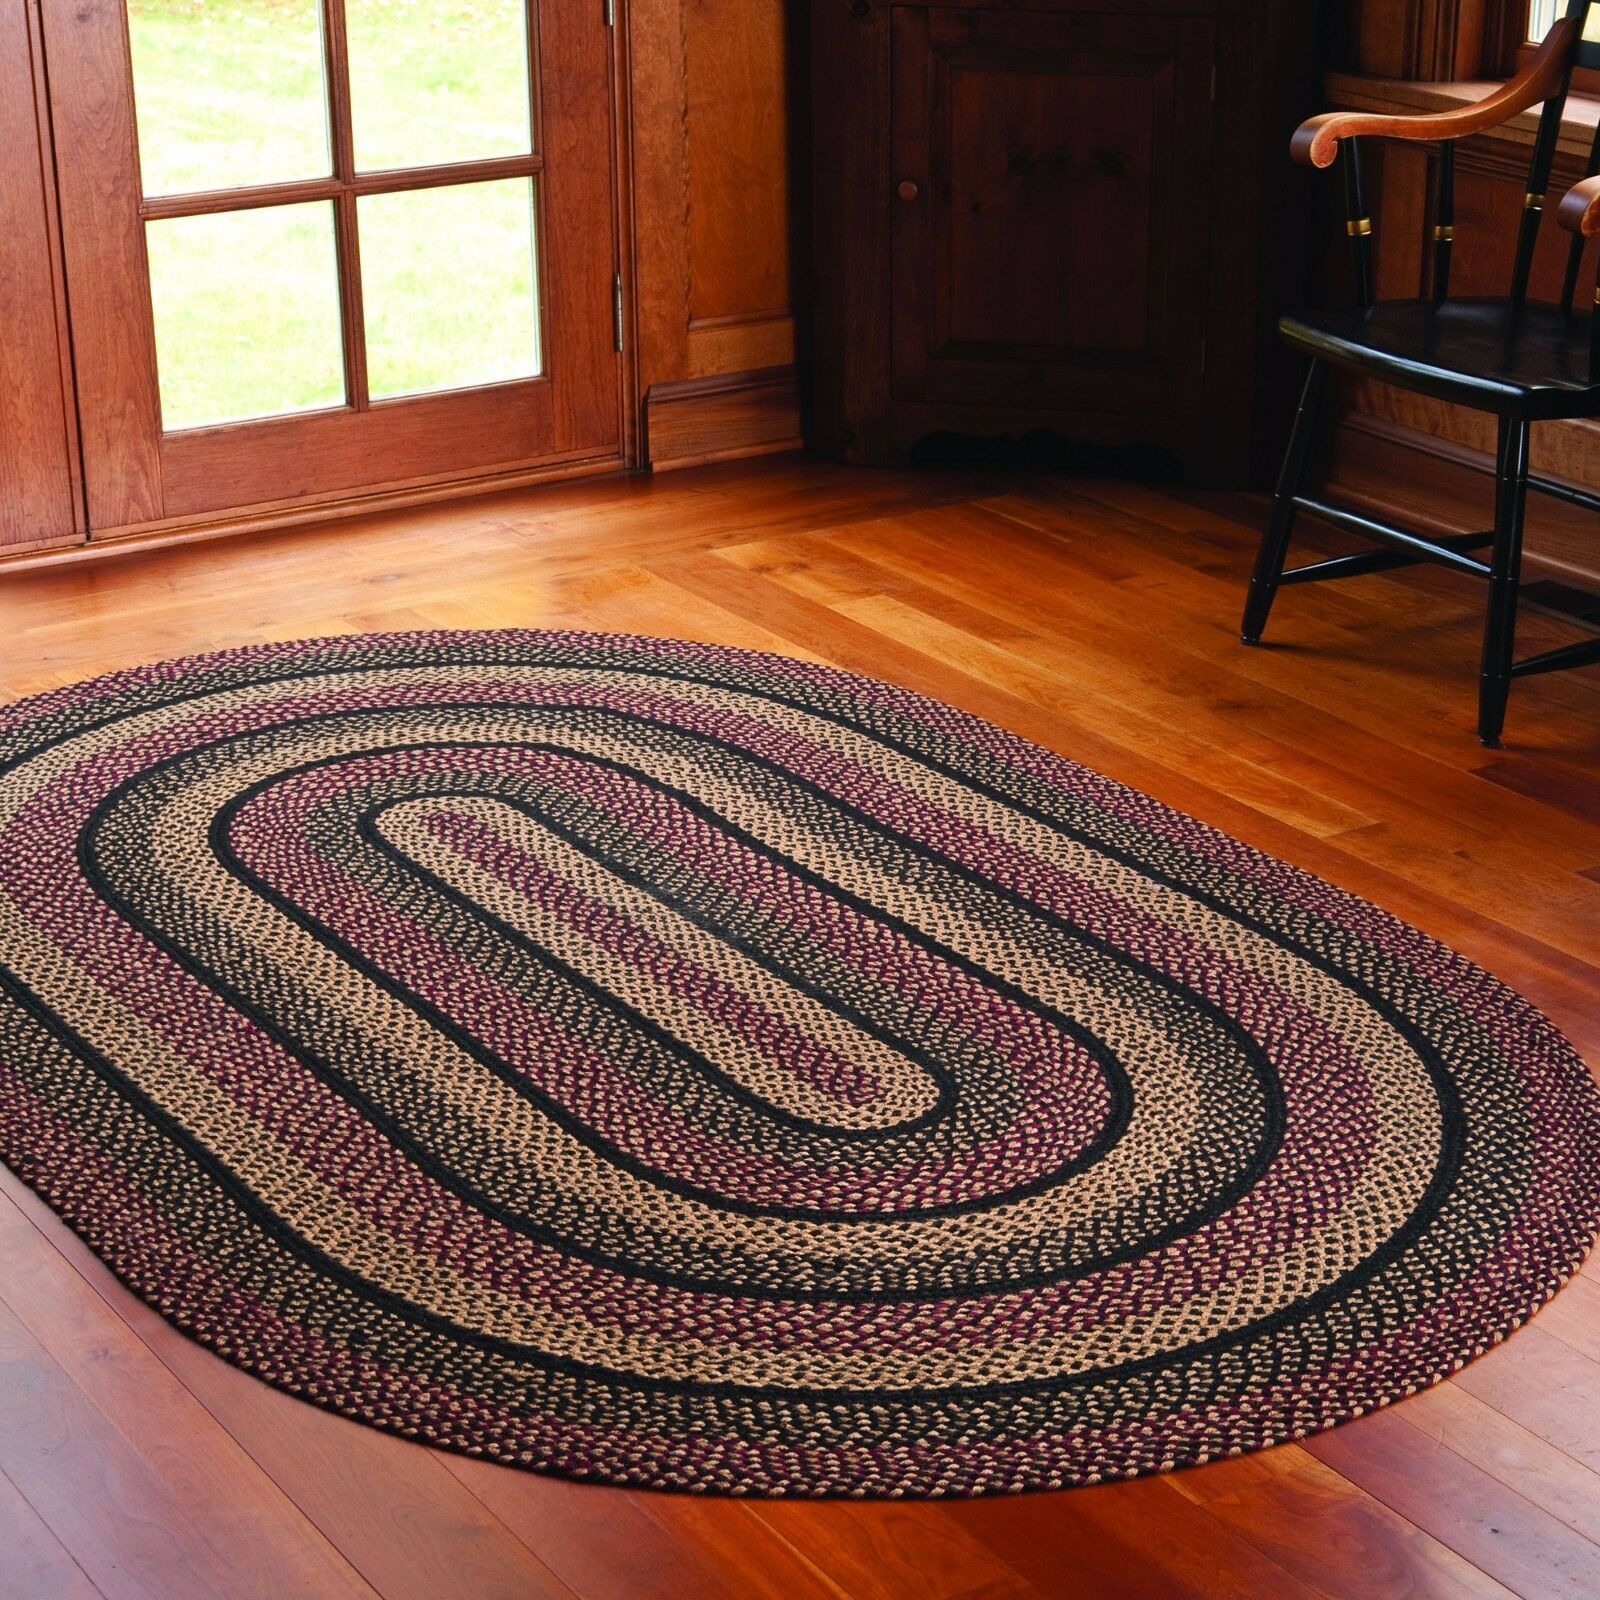 ihf home decor retailers ihf home decor braided area rug 20 quot x 30 quot jute oval carpet 11566